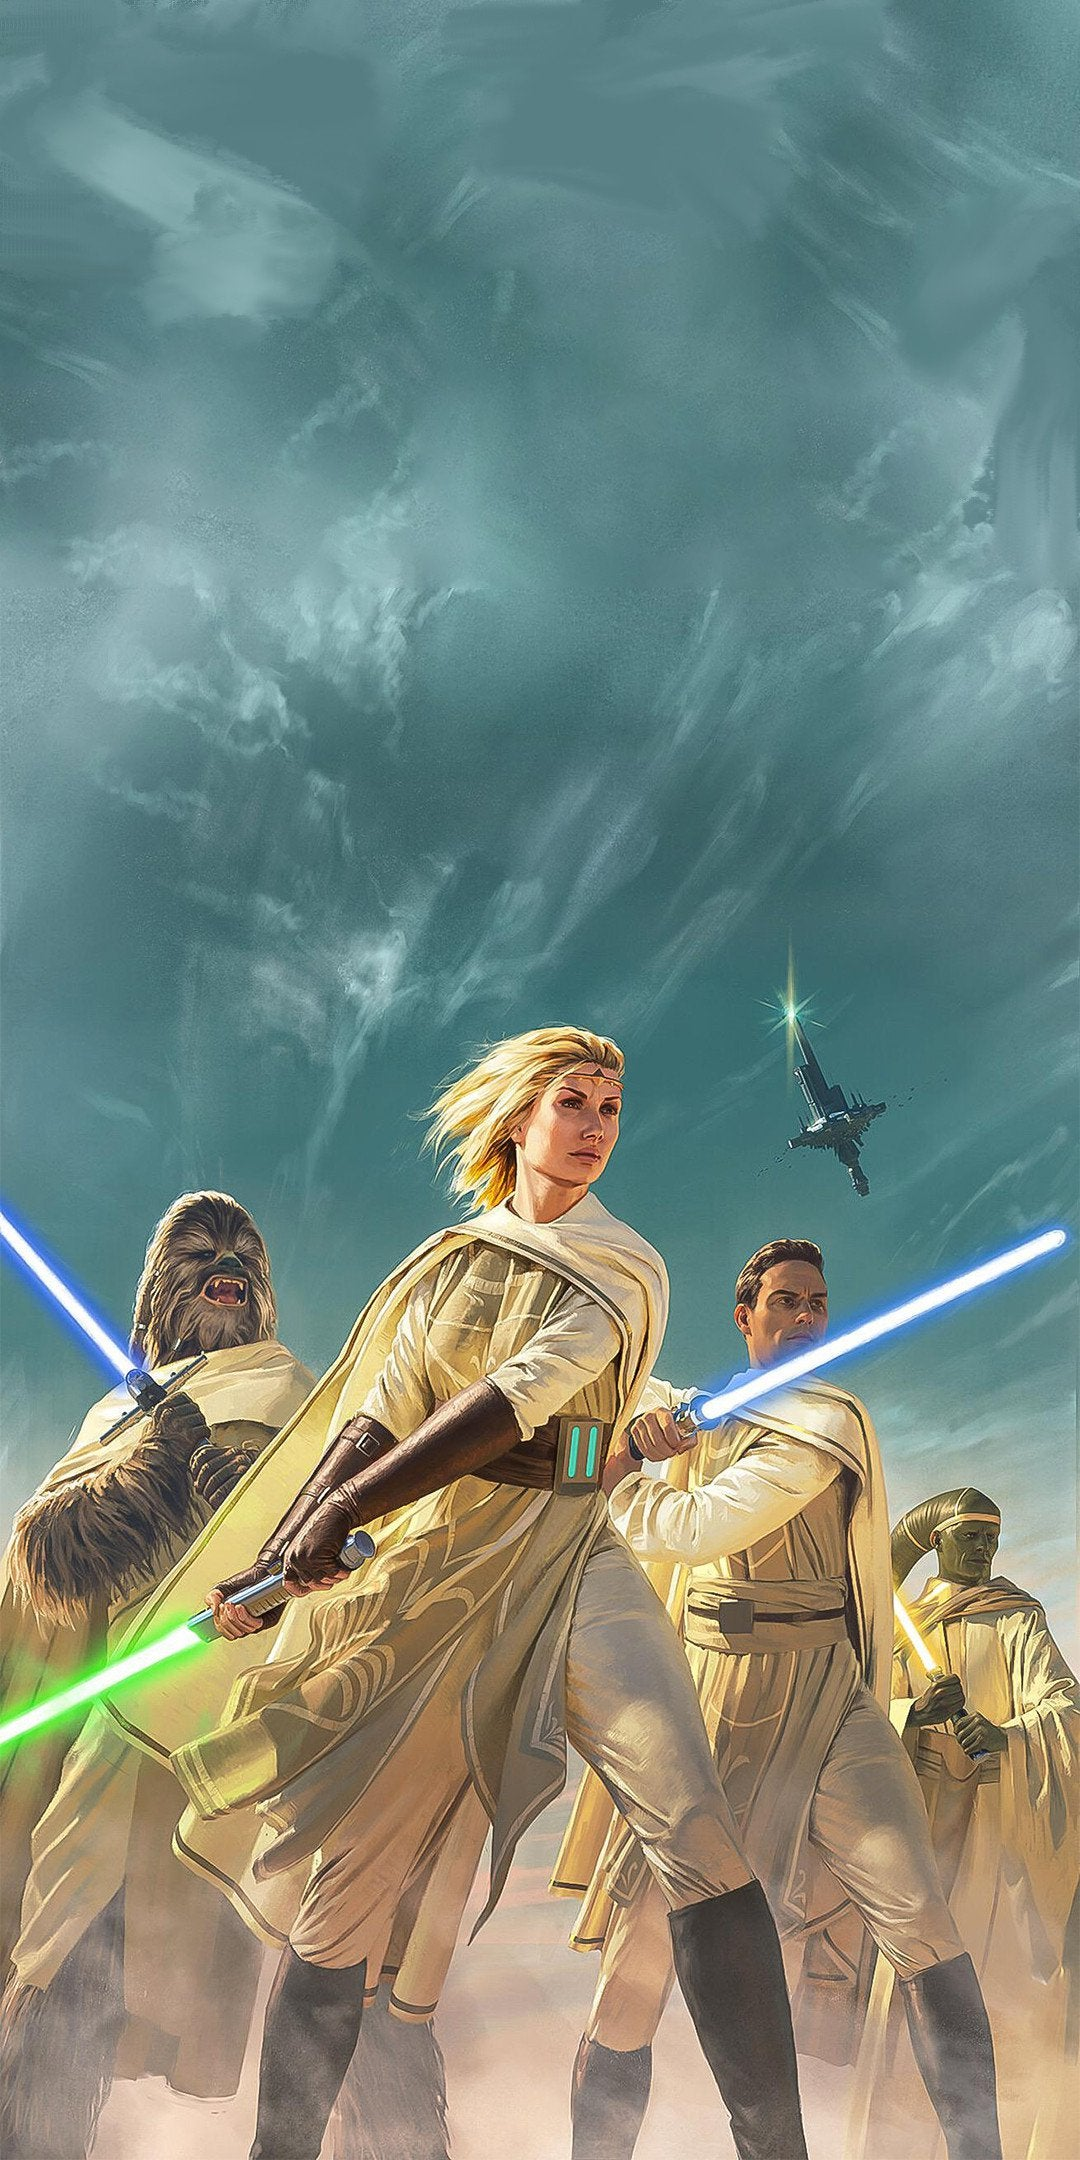 Did a quick Photoshop job on this Light of the Jedi wallpaper to 1080x2160